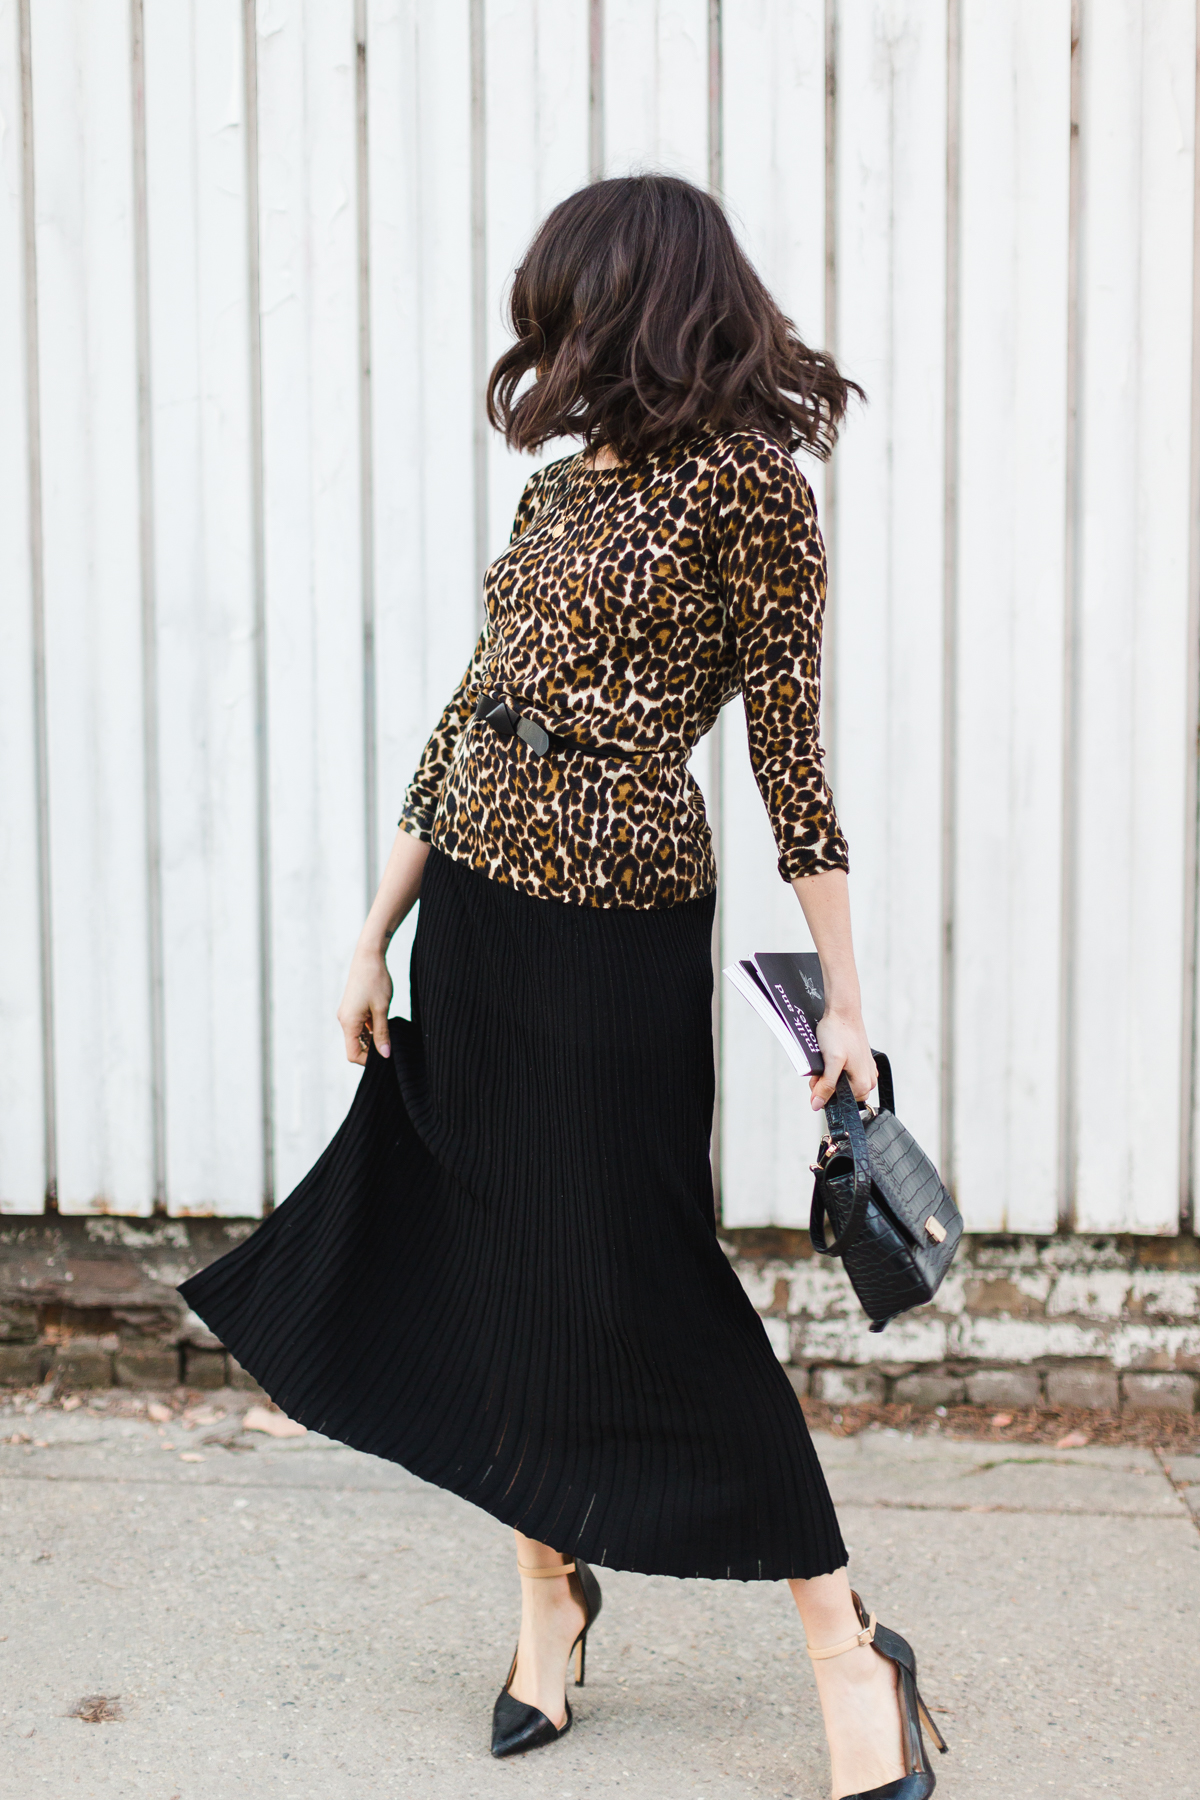 Yana Frigelis of NoMad Luxuries wearing a leopard sweater from Jcrew and a midi length skirt from mango for a classic look